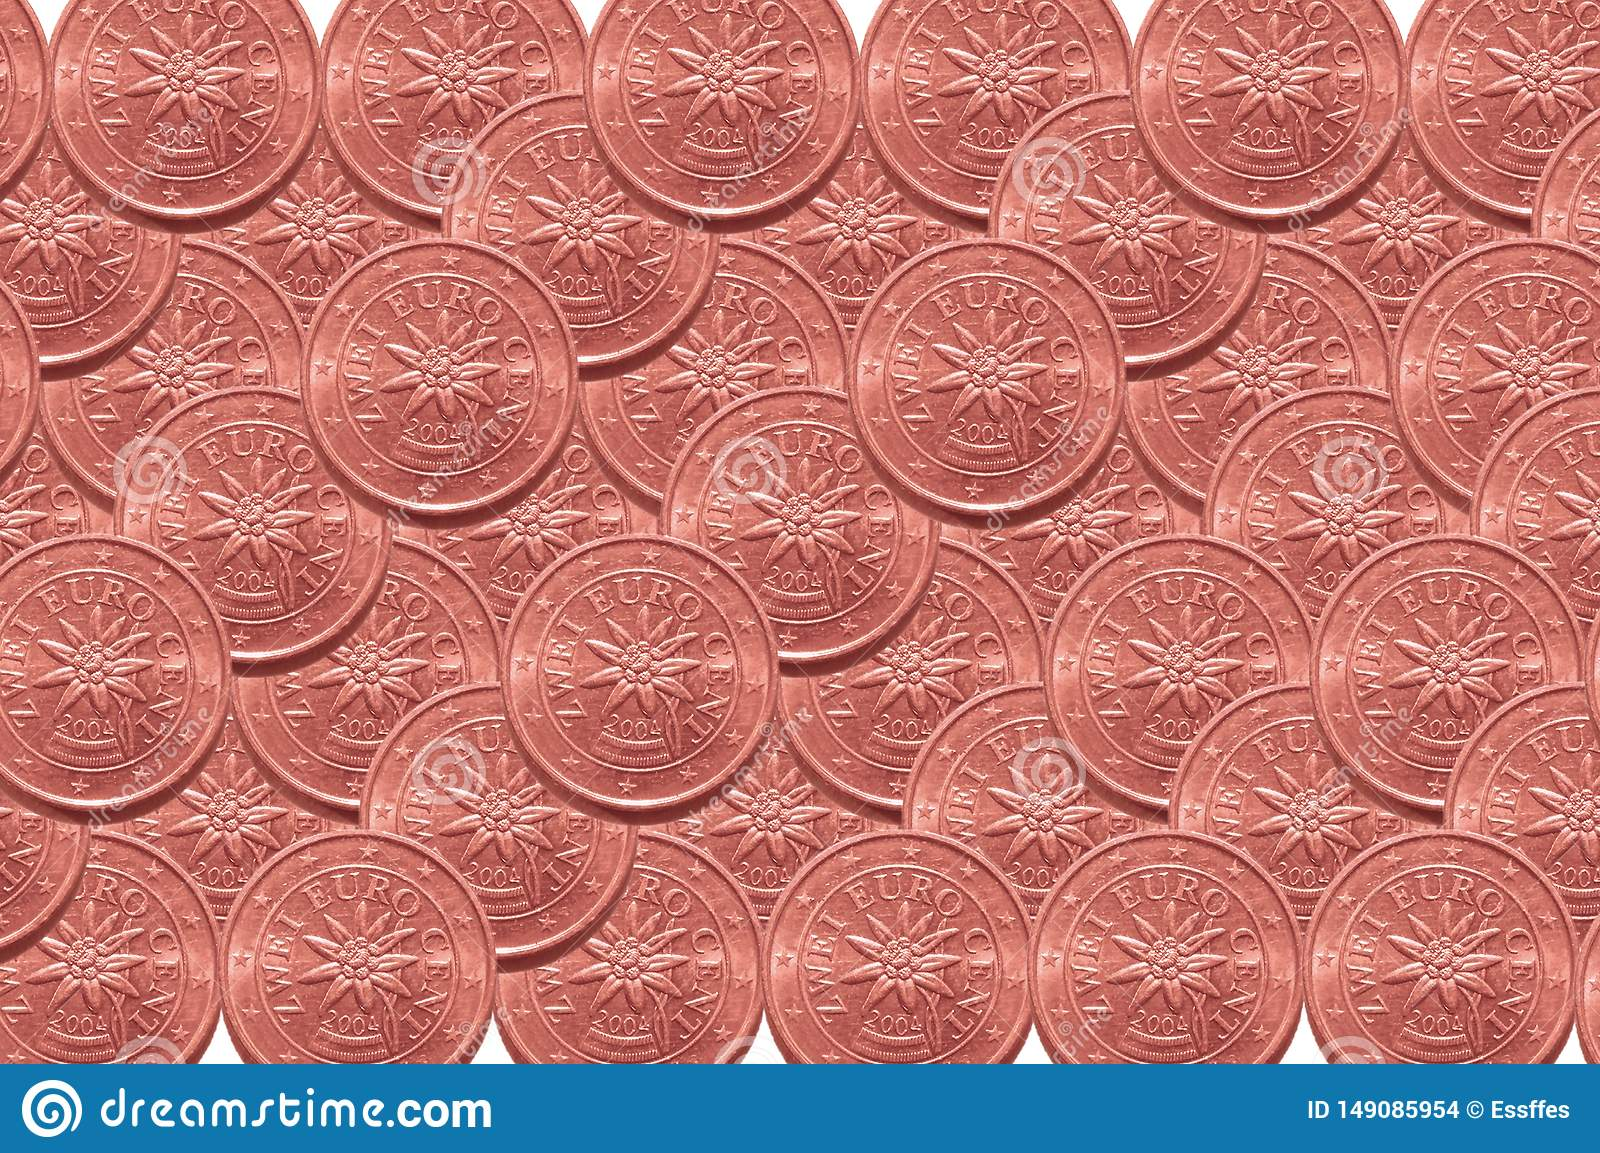 Background from two euro cents coins.